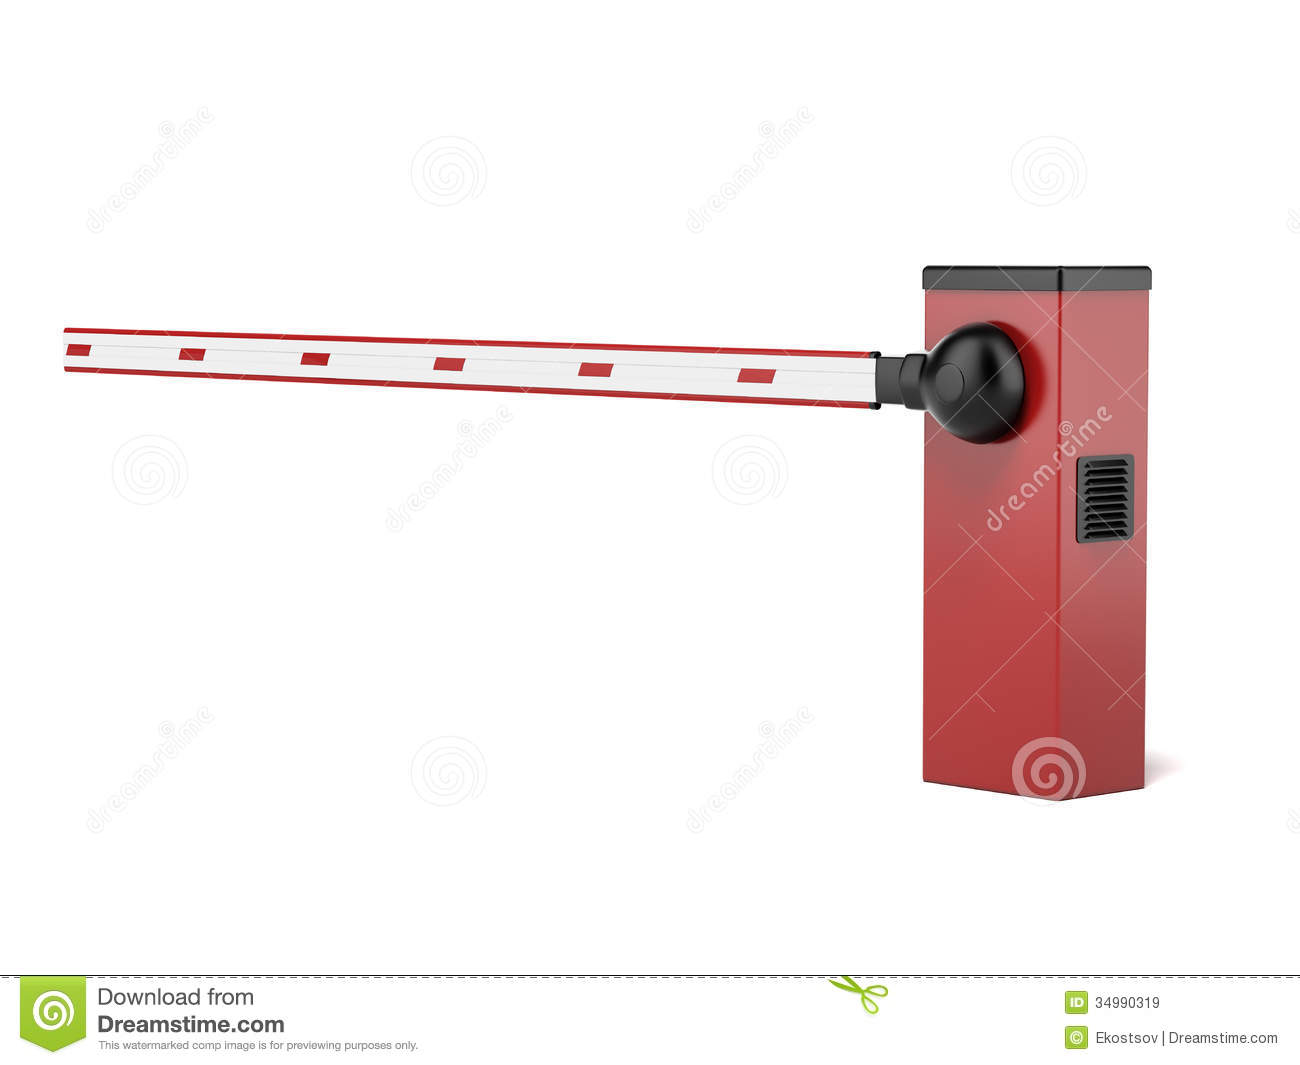 Security gate clipart clip freeuse library Barrier Gate Stock Illustrations – 1,066 Barrier Gate Stock ... clip freeuse library